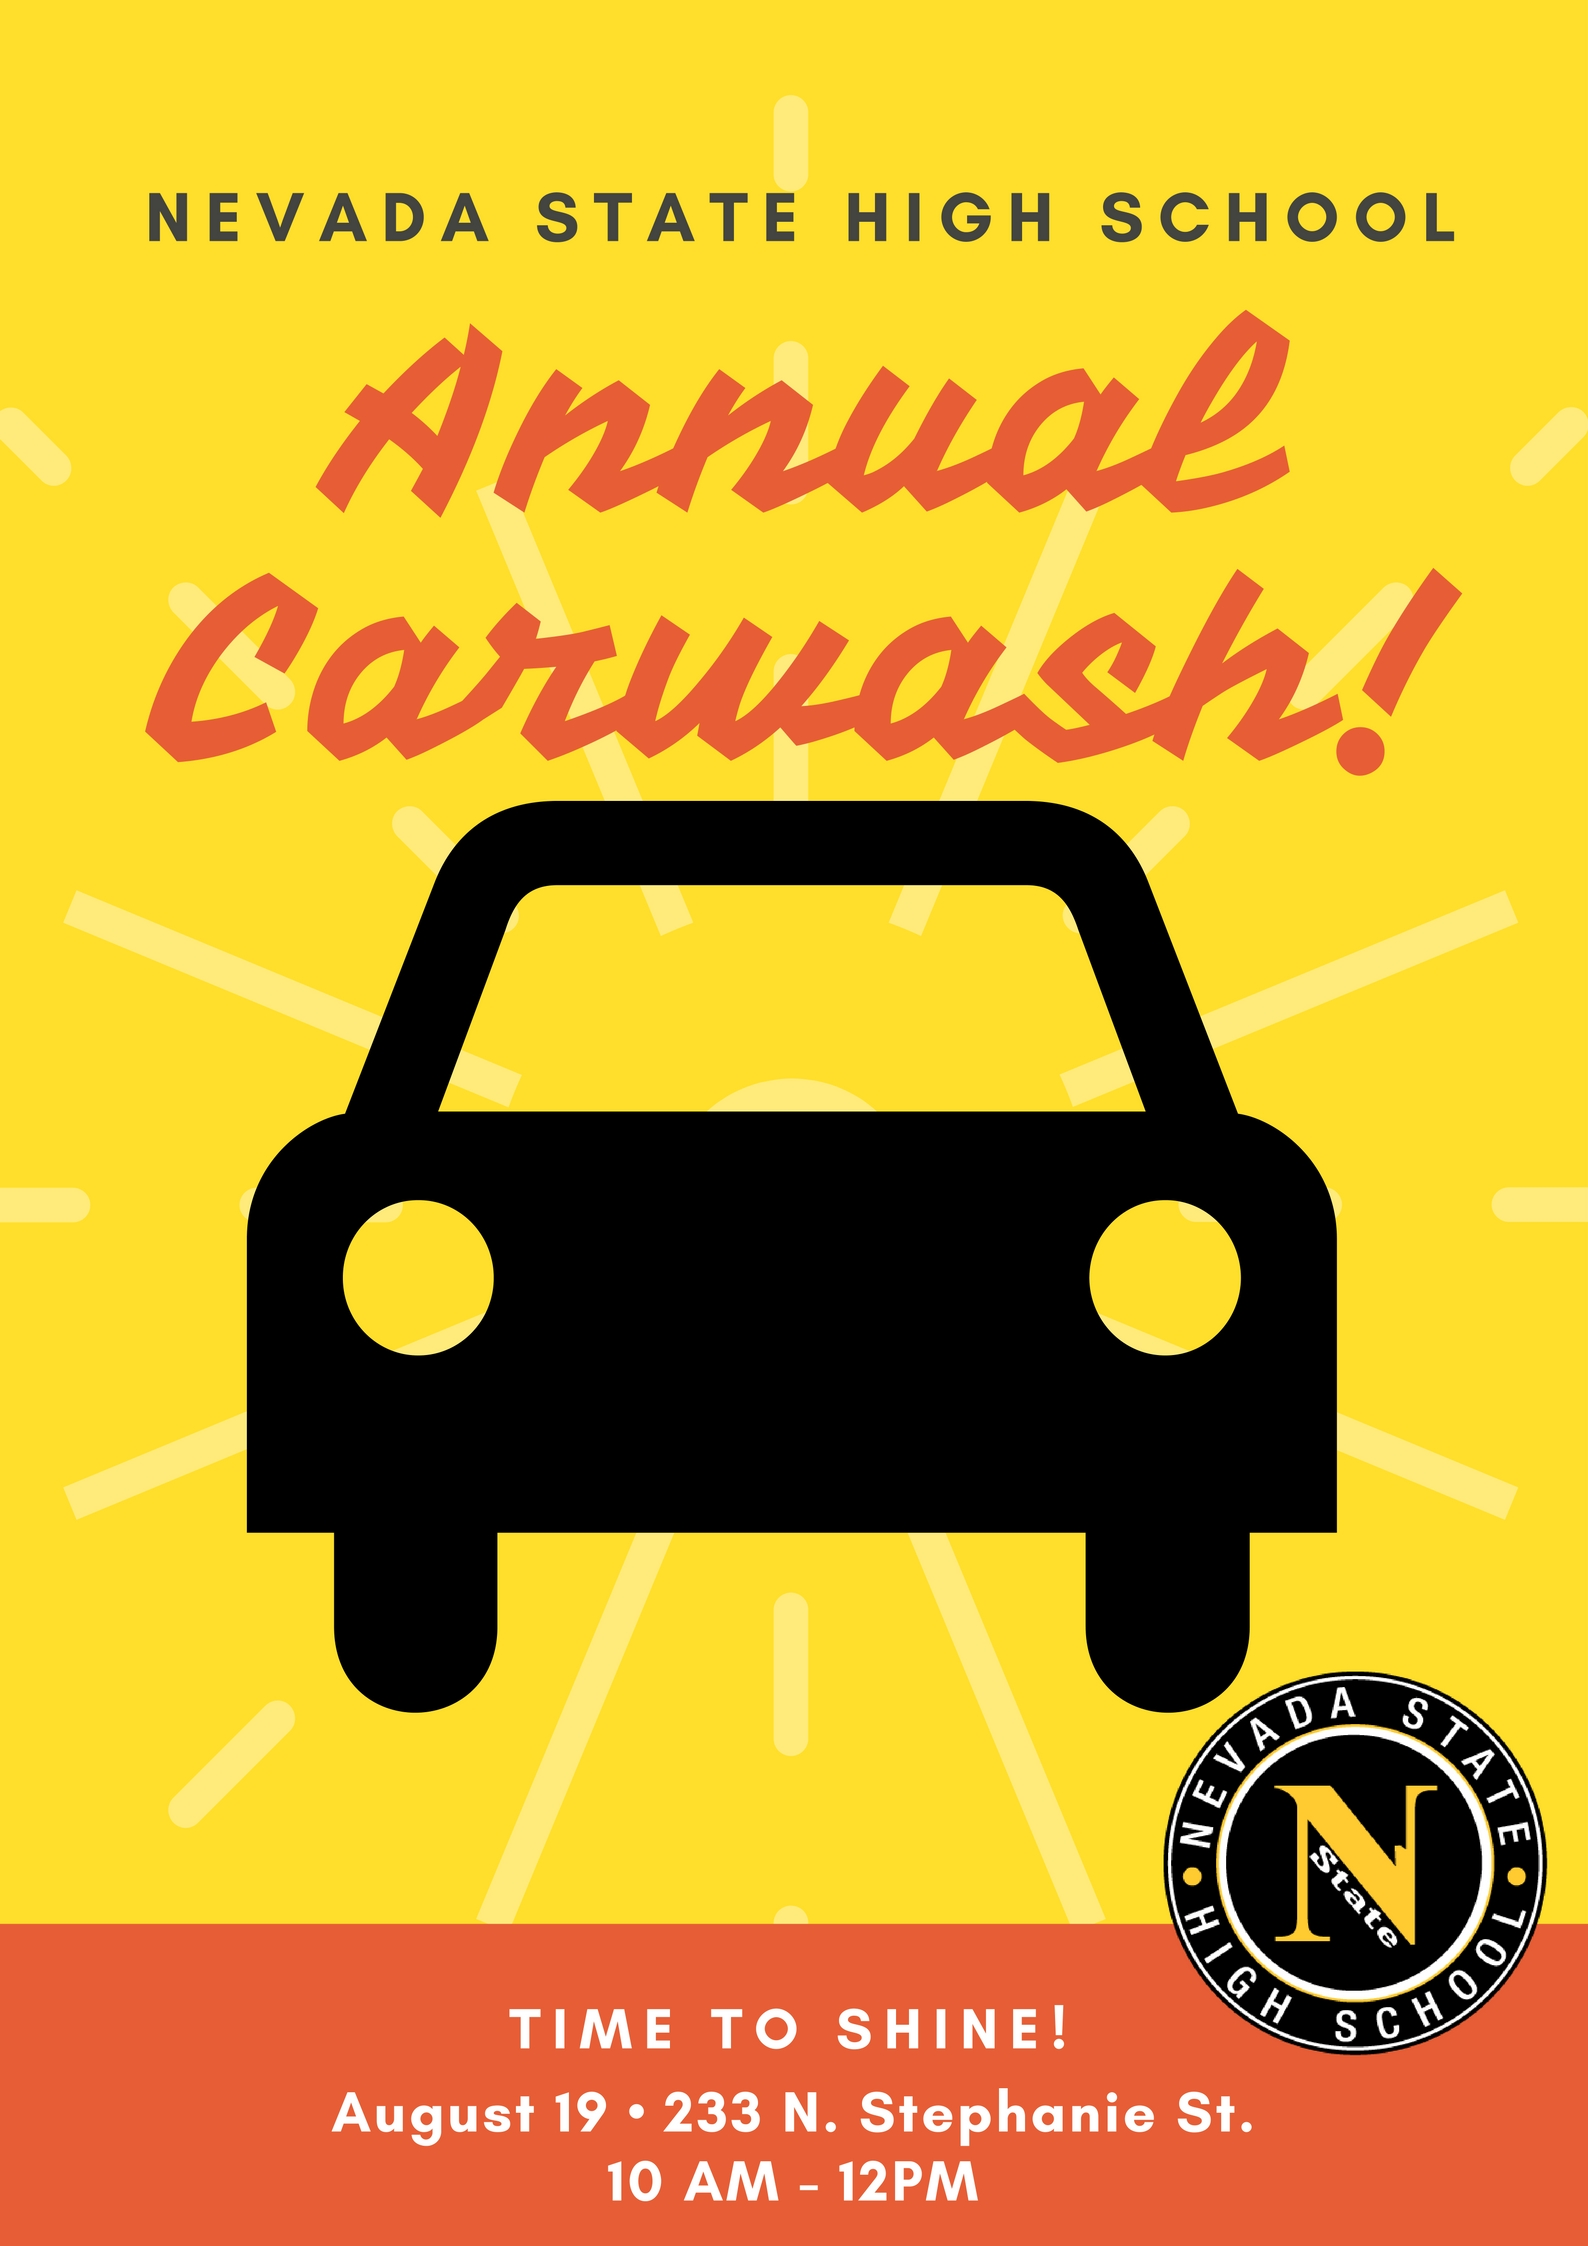 Car Wash Sponsorship 2017 Nevada State High School